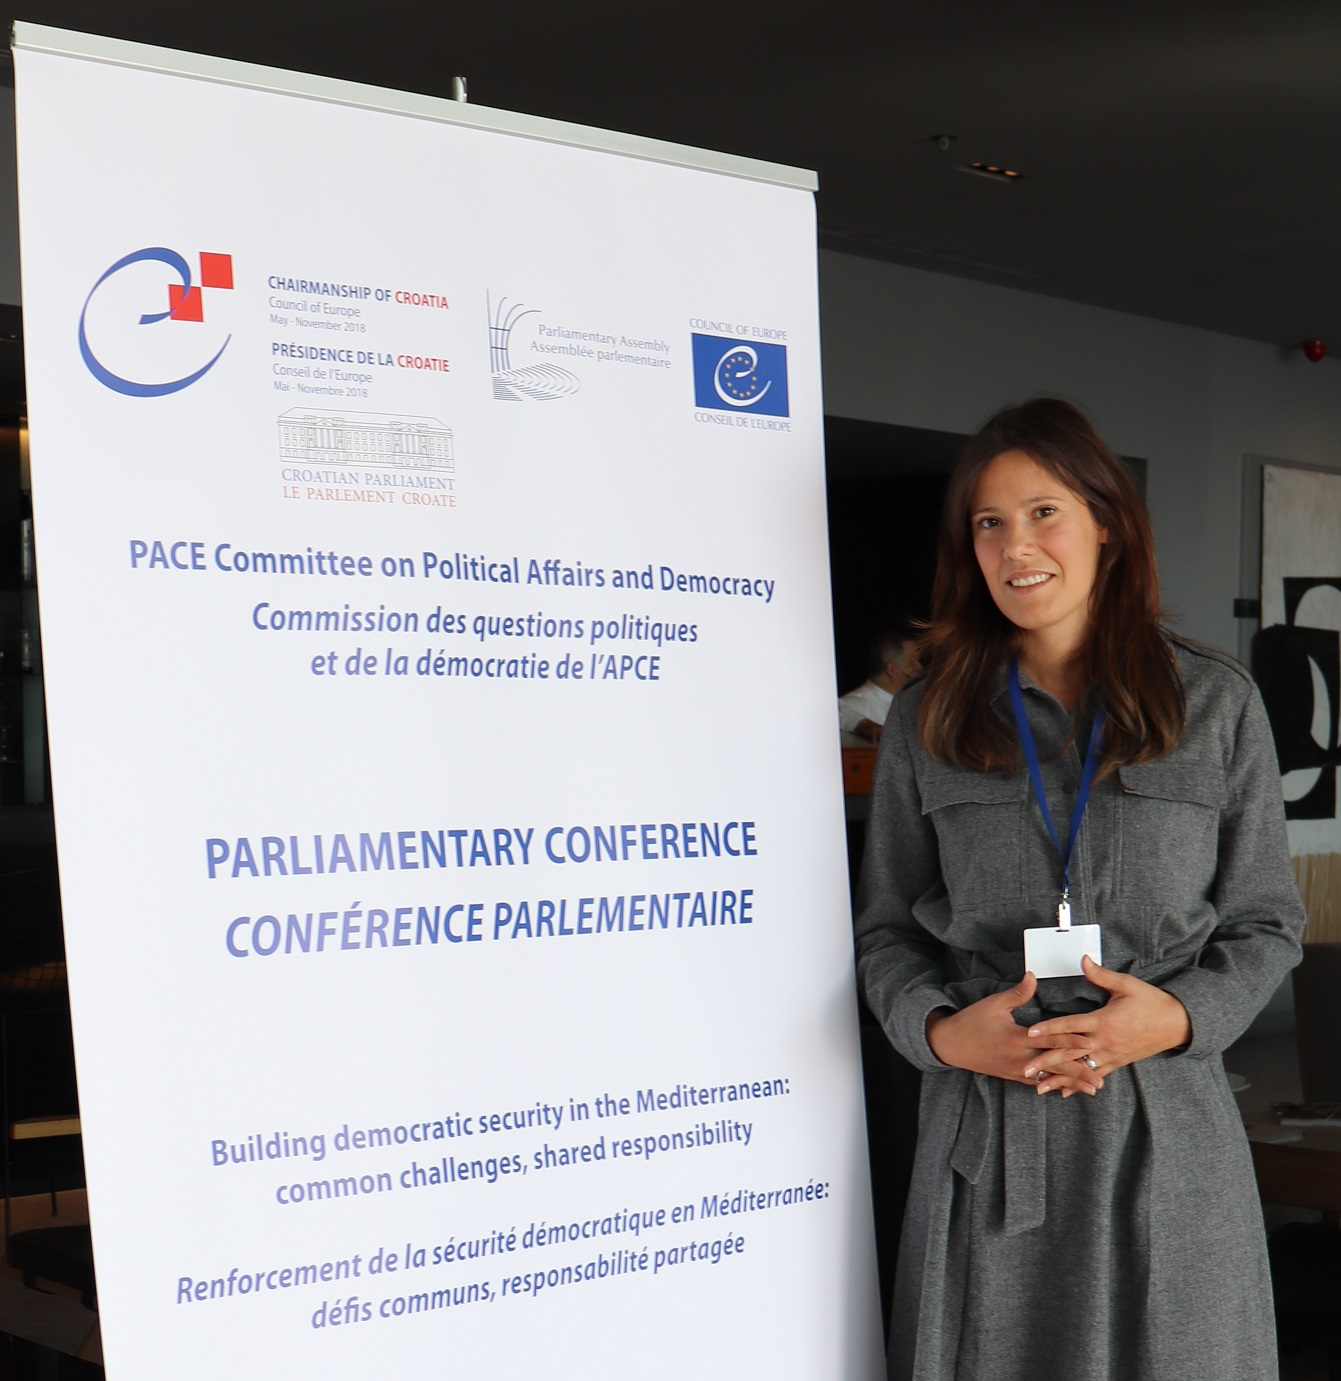 PAM's Parliamentary Diplomacy a vital stakeholder in challenges facing the Mediterranean - Hon. Dragica Roščić